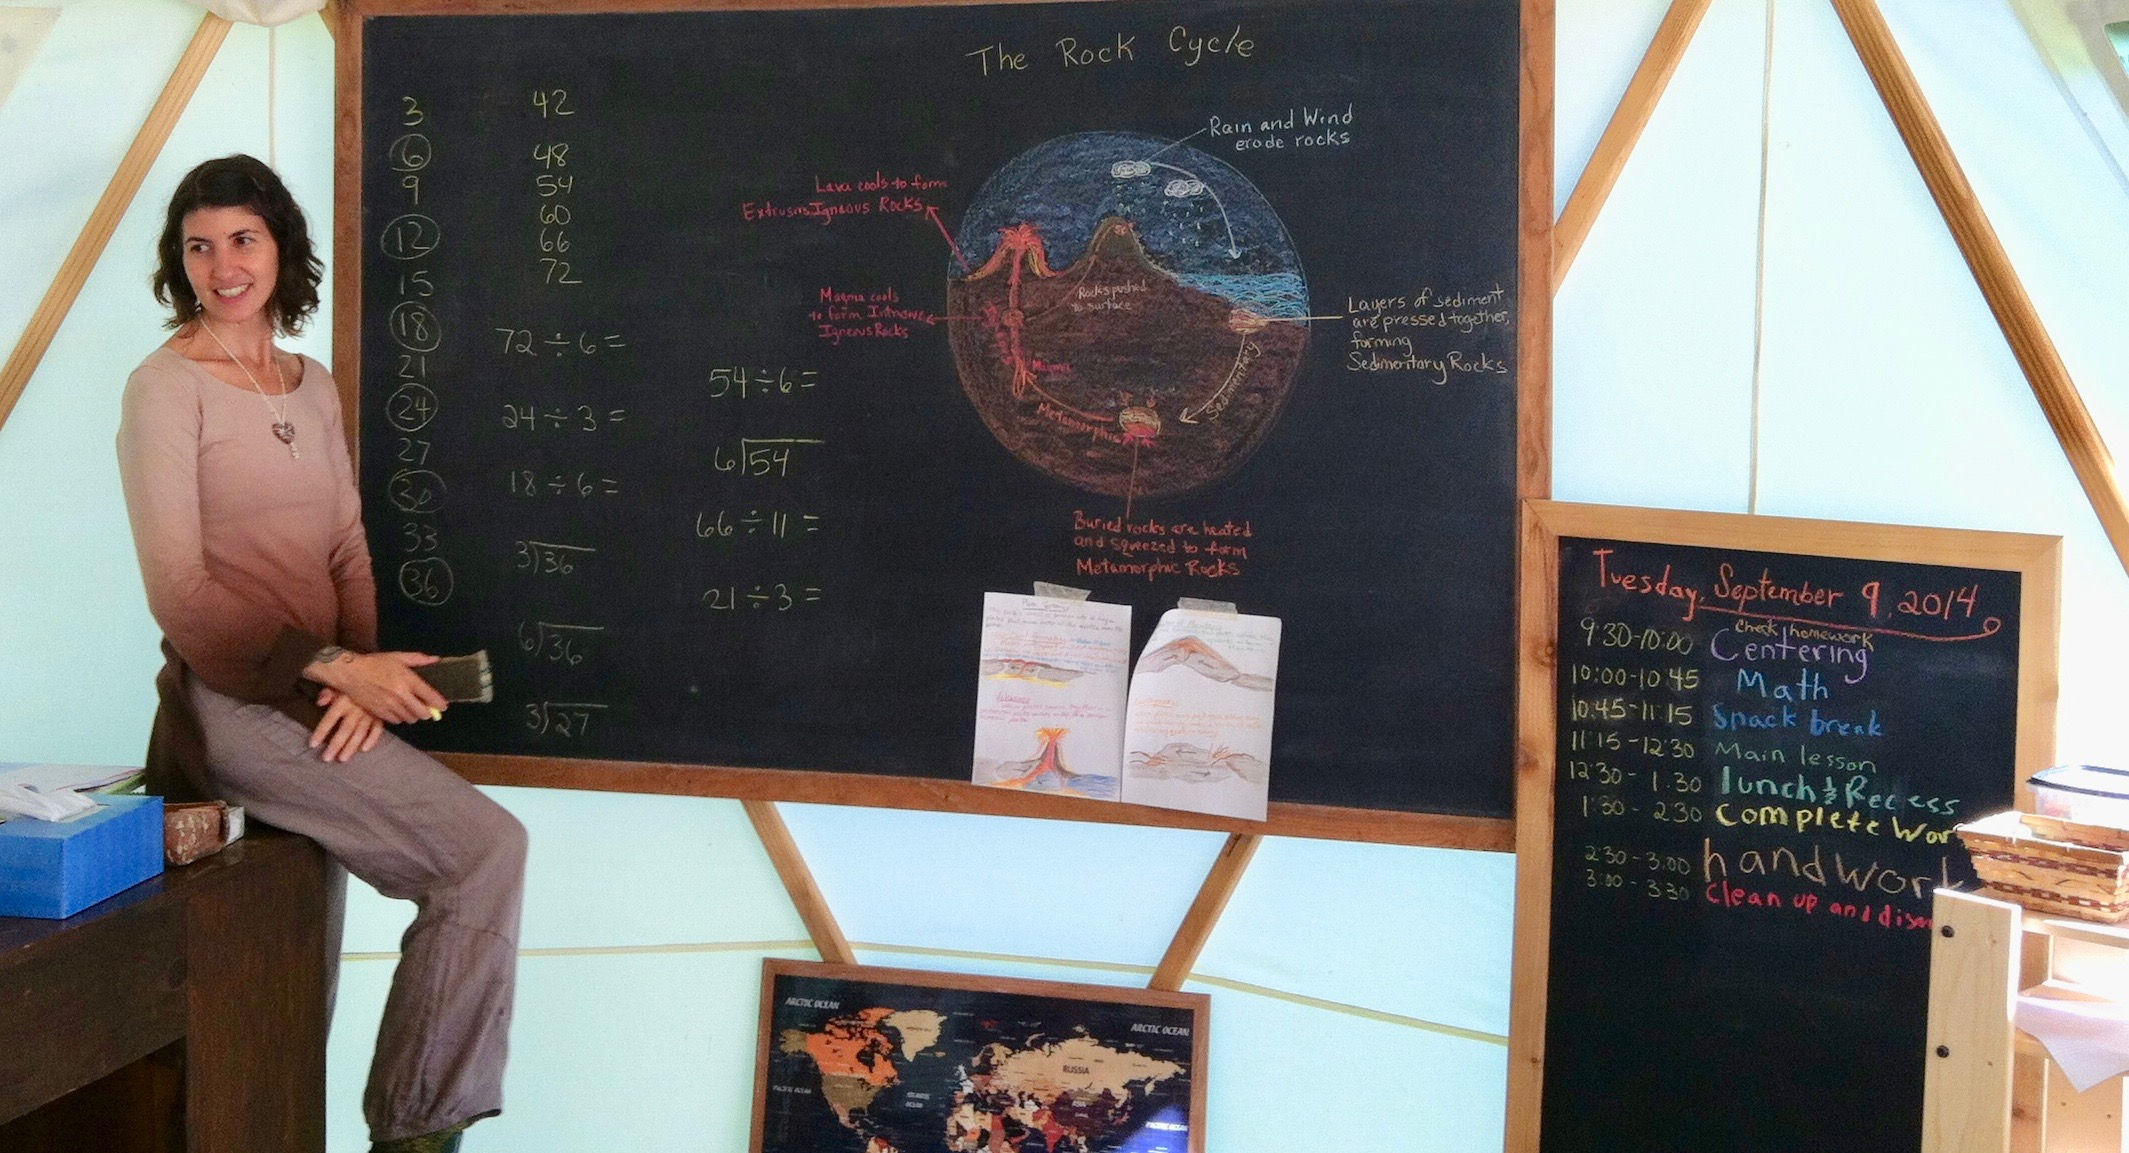 A thematic lesson on the rock cycle, presented as part of a geology block.